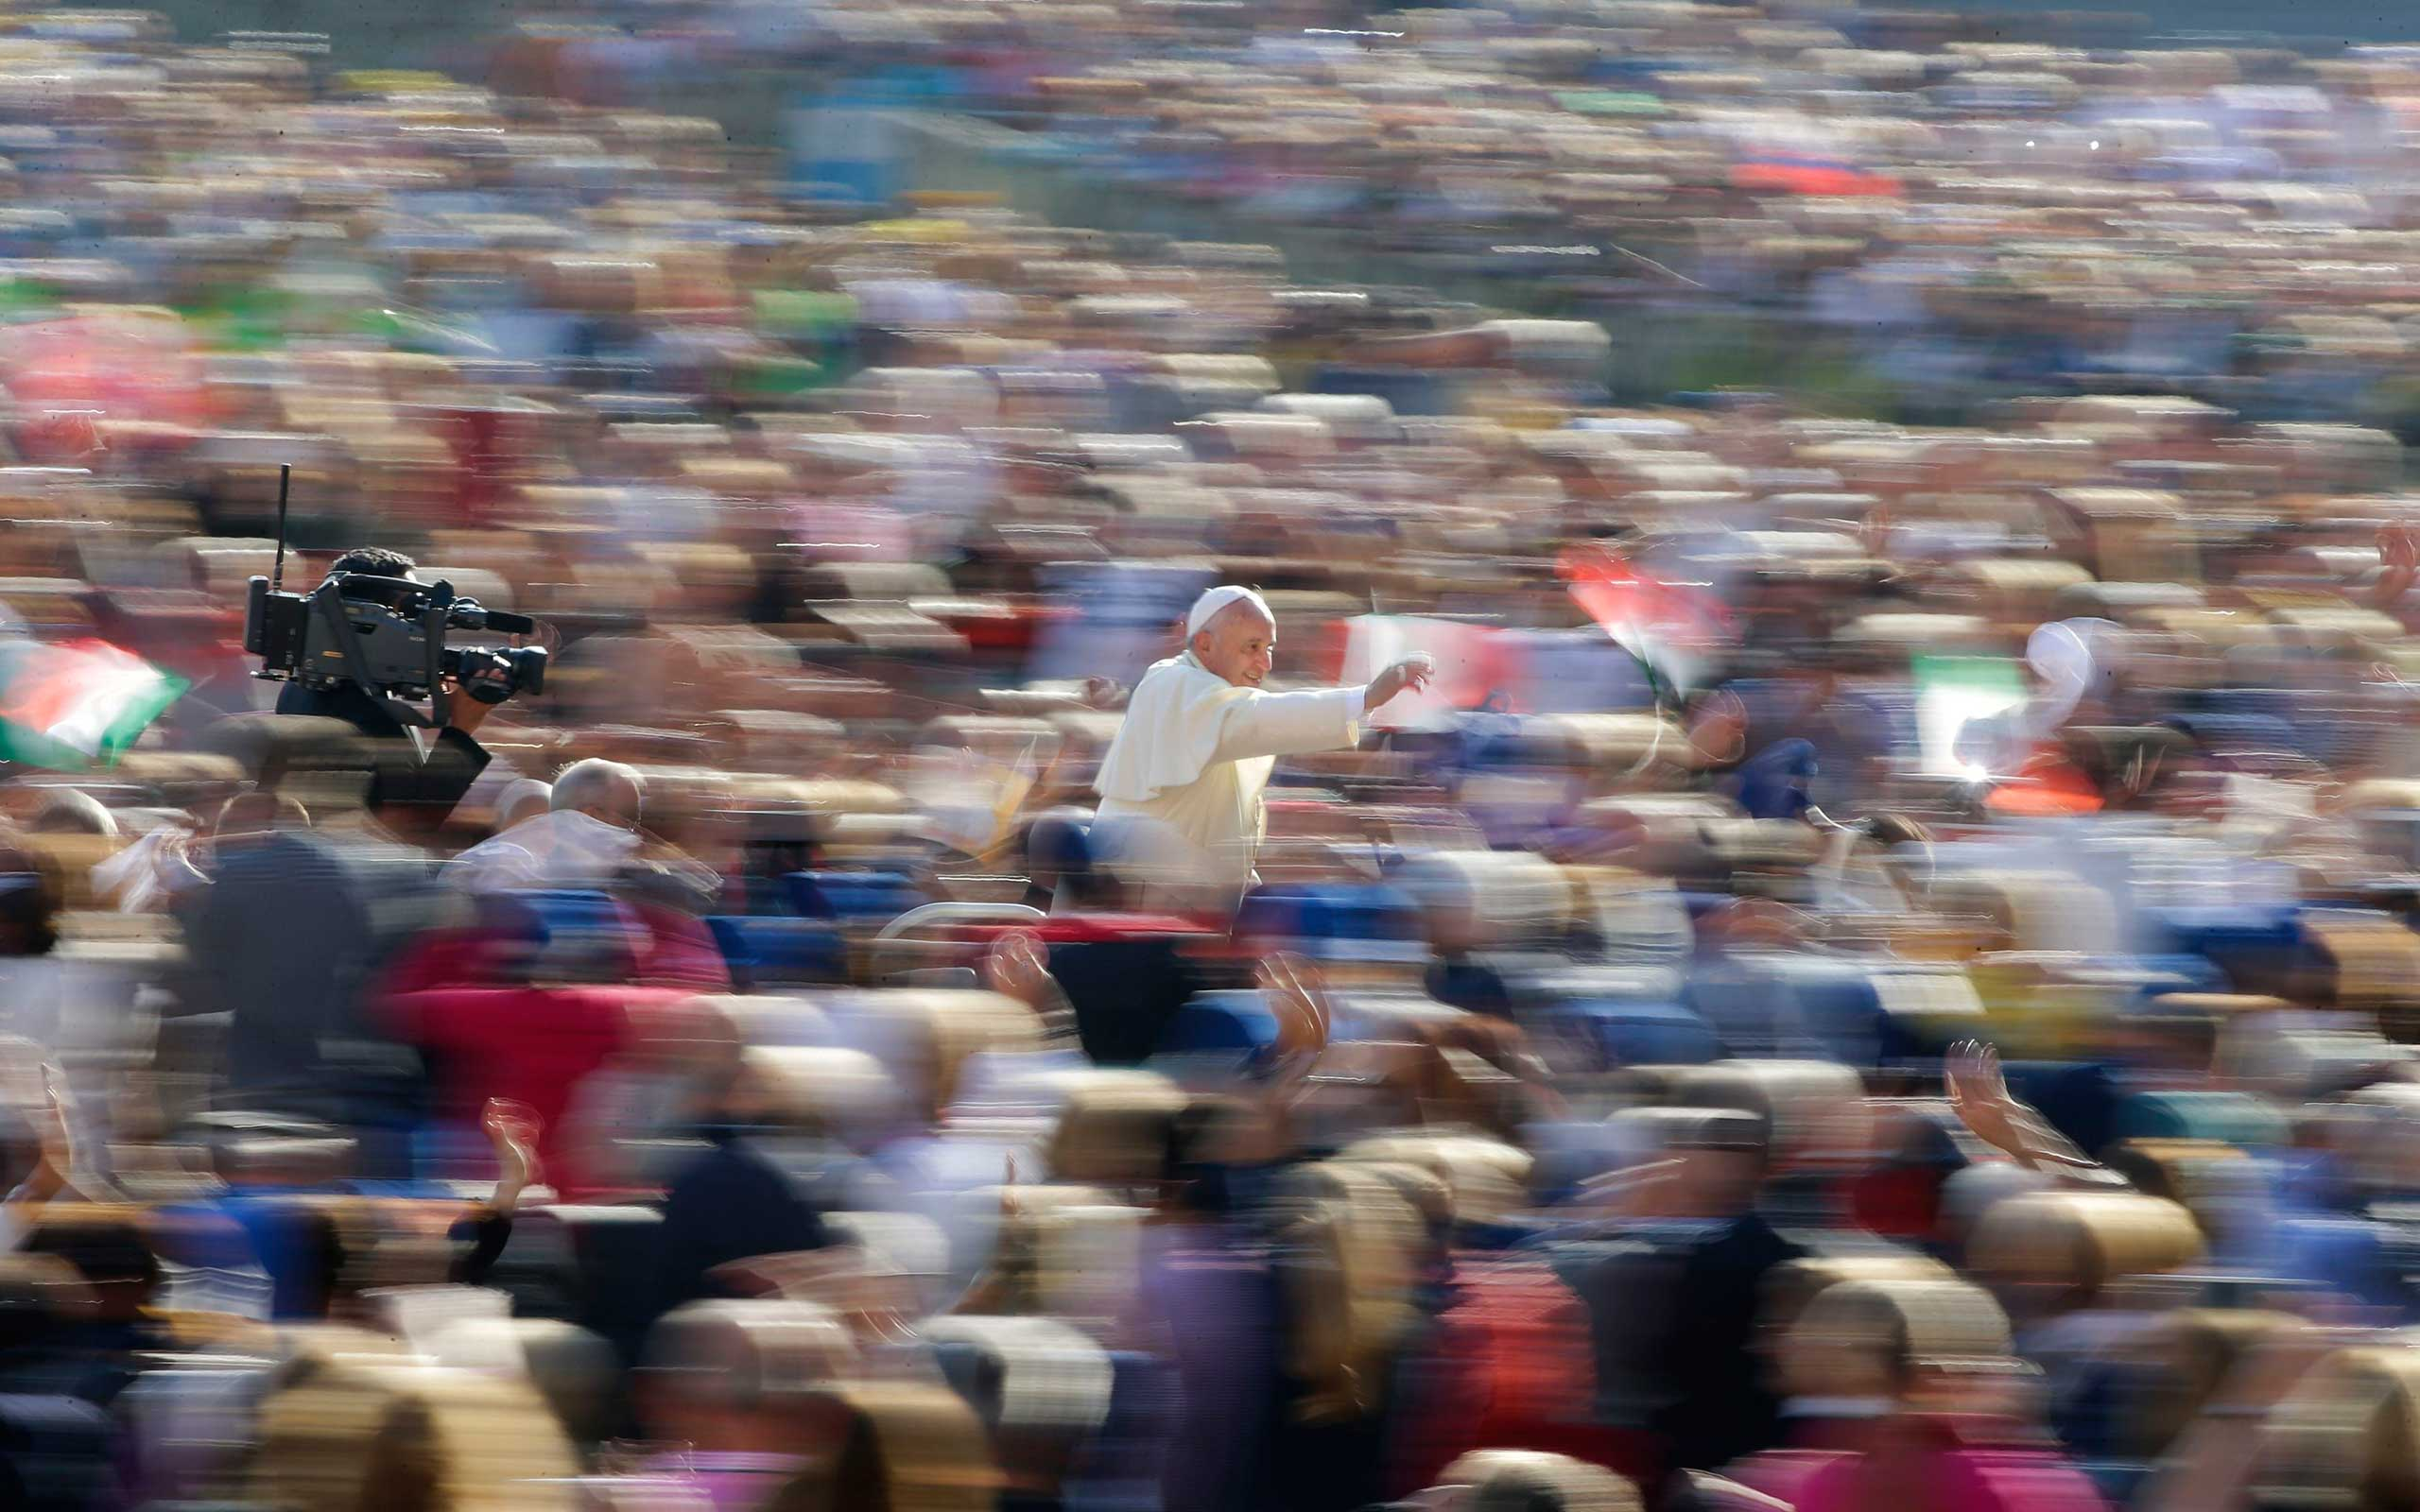 Oct. 8, 2014. Pope Francis waves as he leads his weekly audience in Saint Peter's Square at the Vatican.